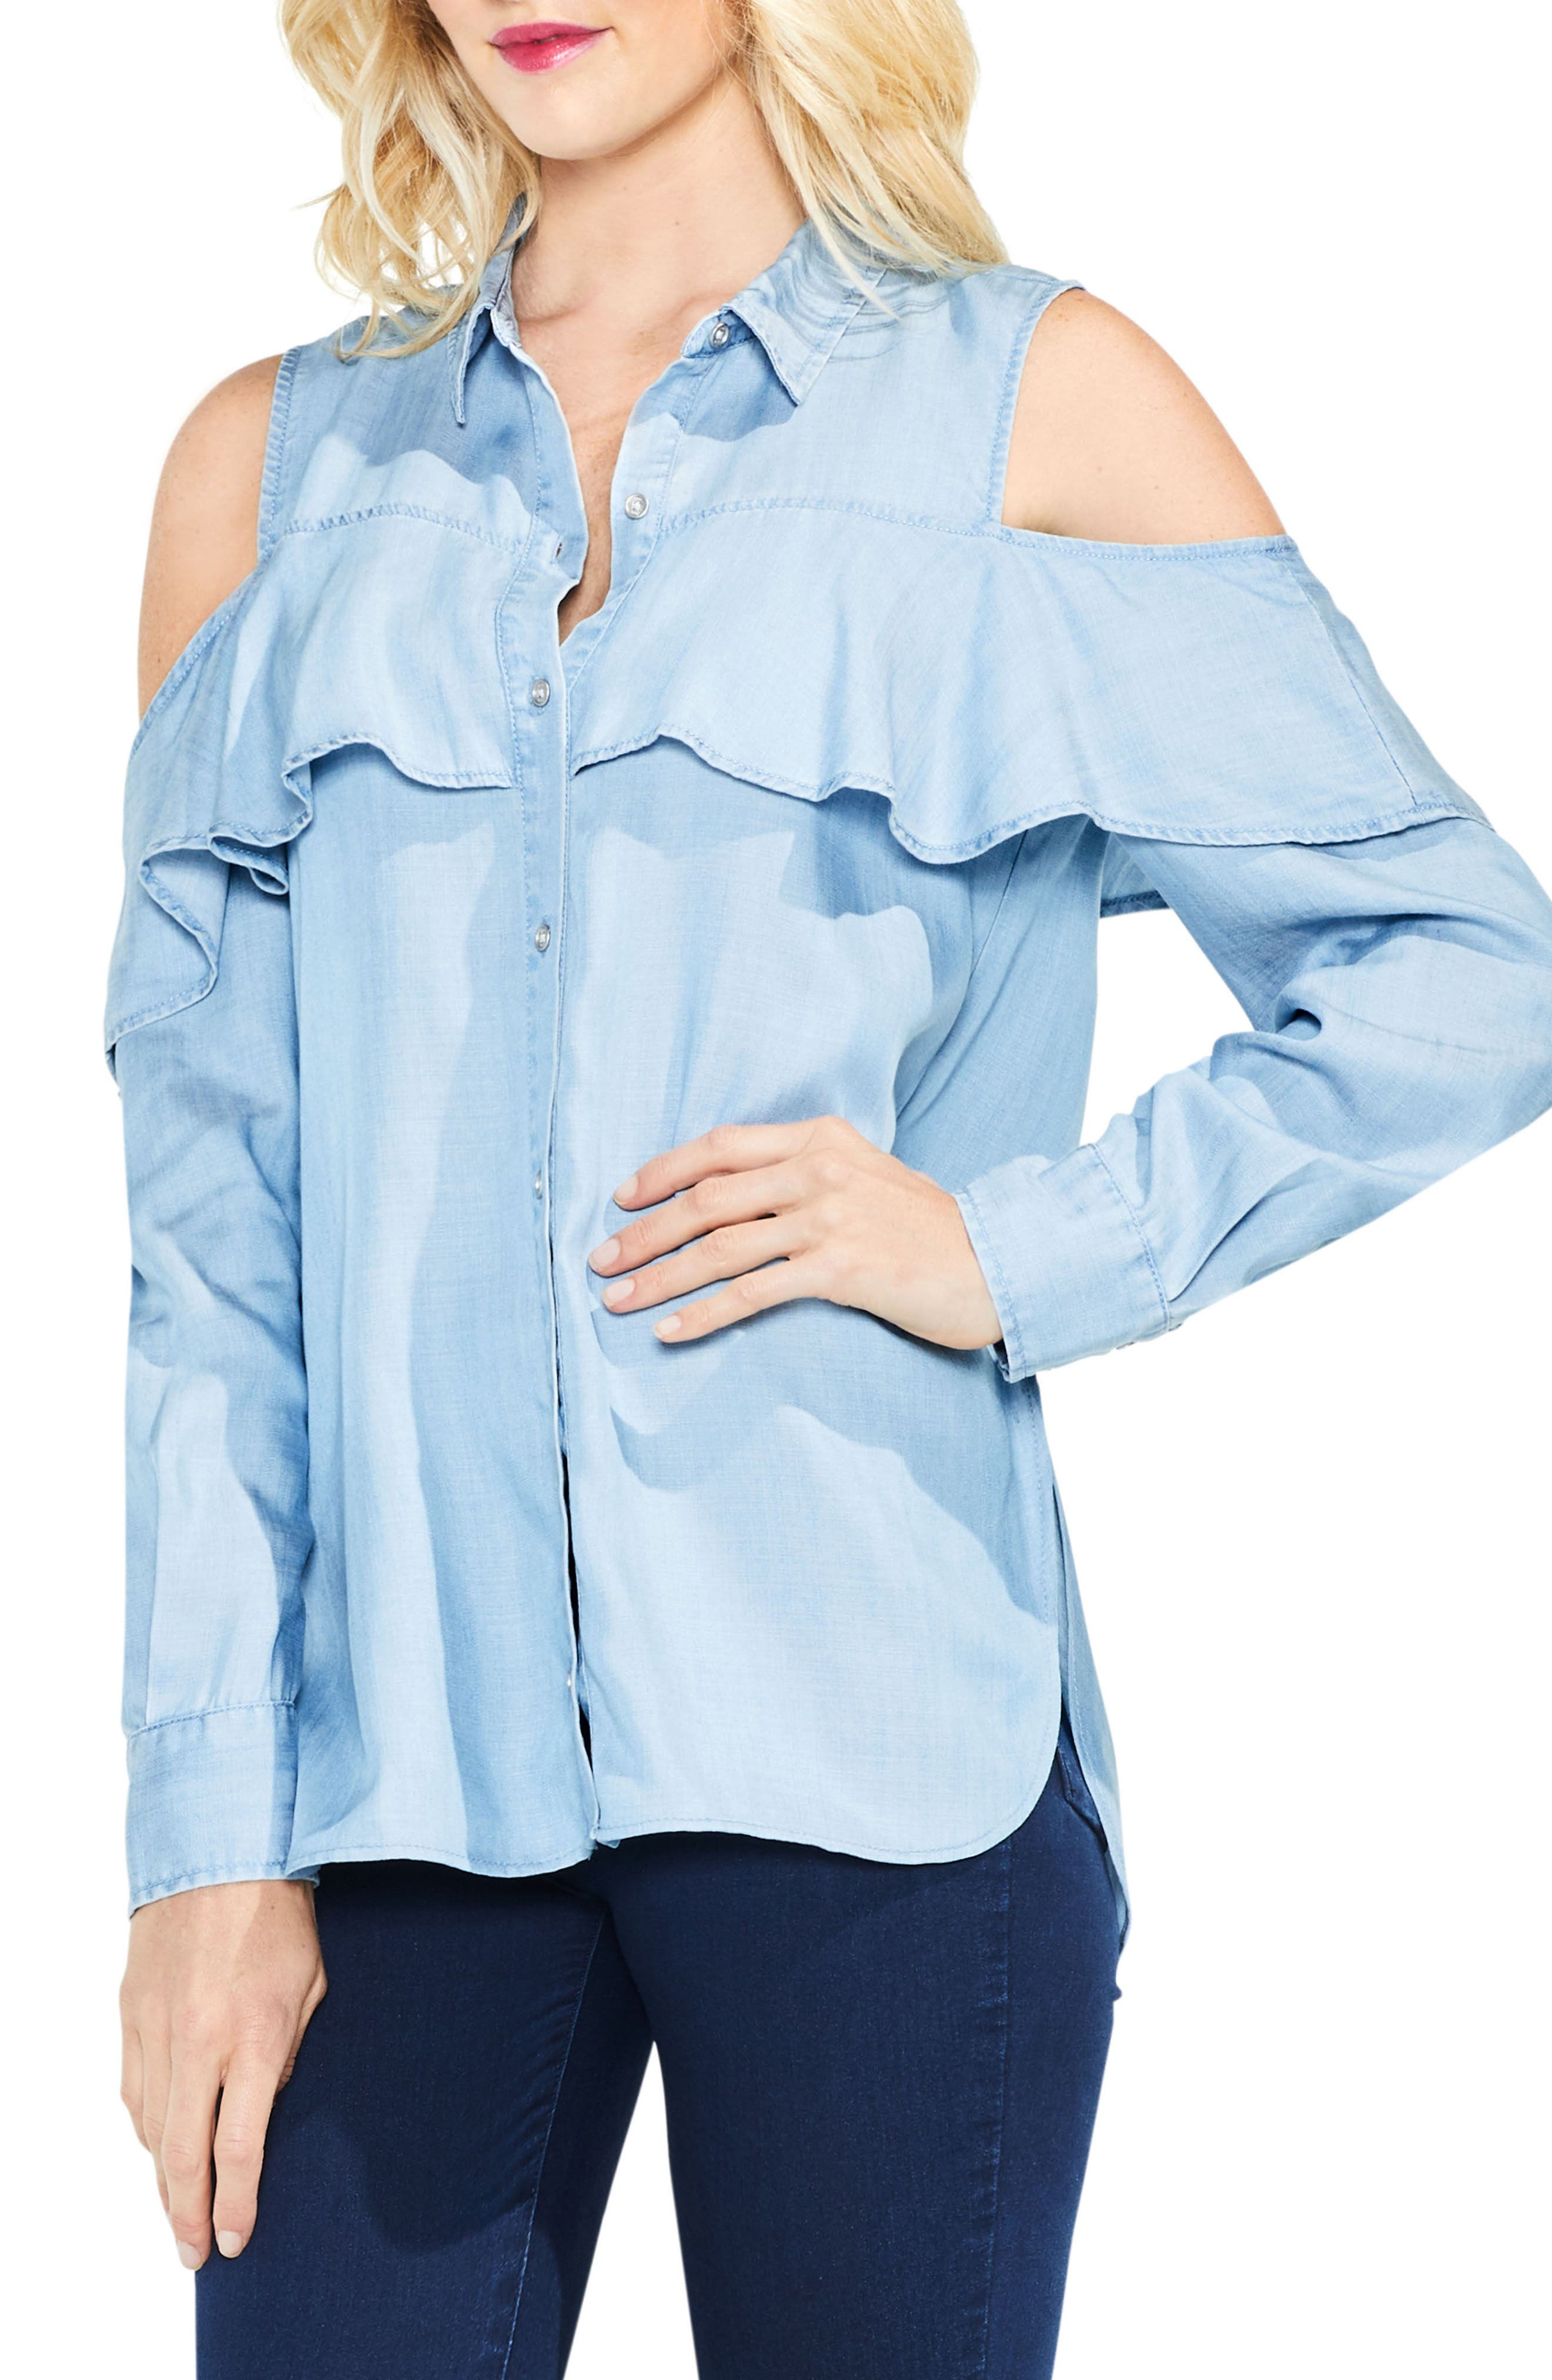 Alternate Image 1 Selected - Two by Vince Camuto Cold Shoulder Ruffled Chambray Shirt